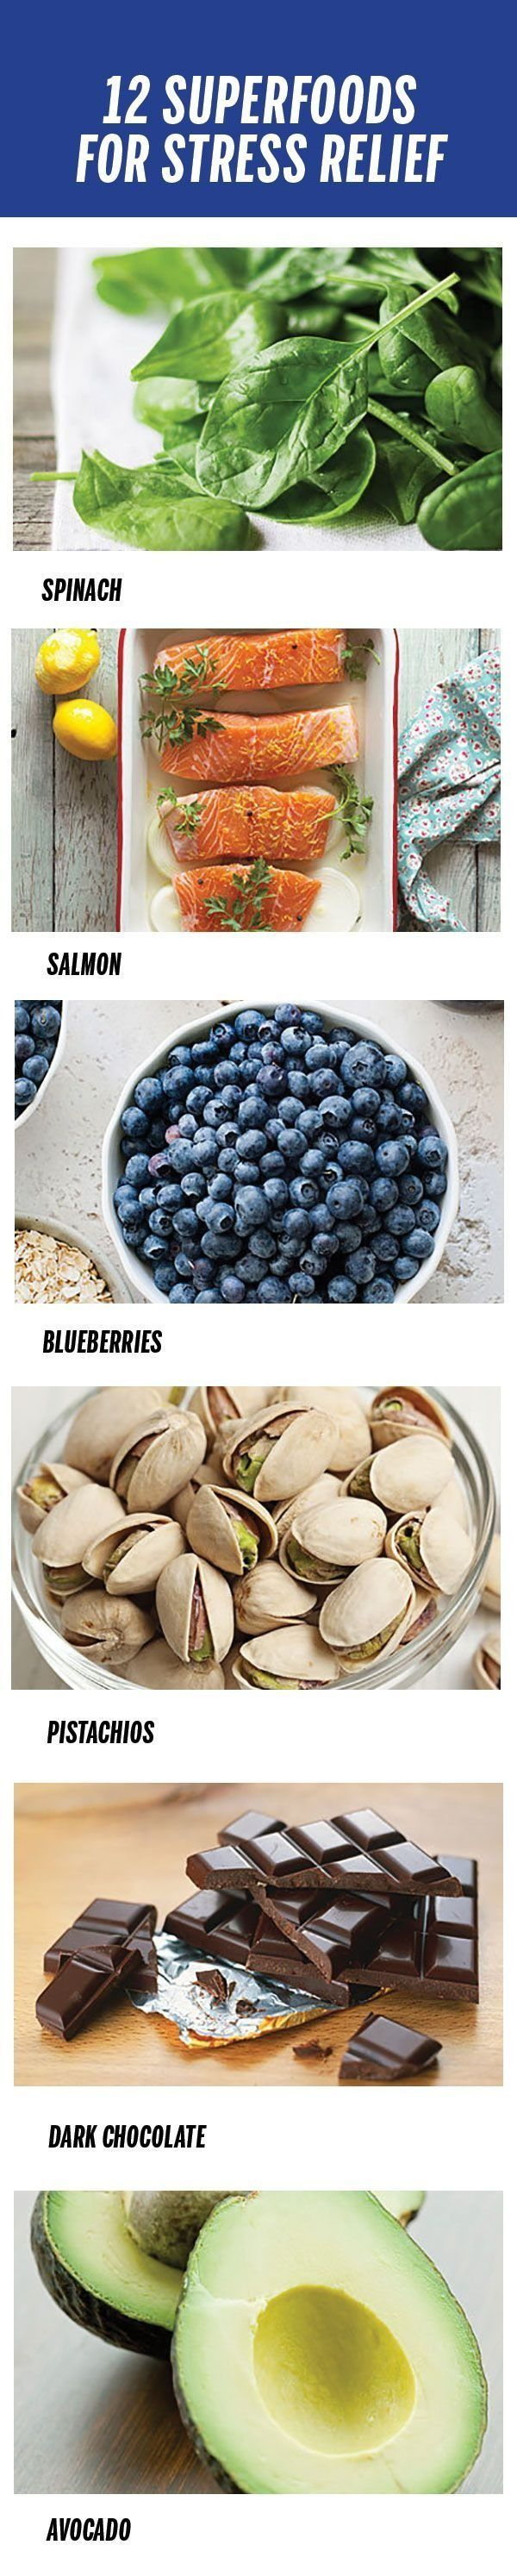 12 superfoods to eat for stress relief. | Health.com